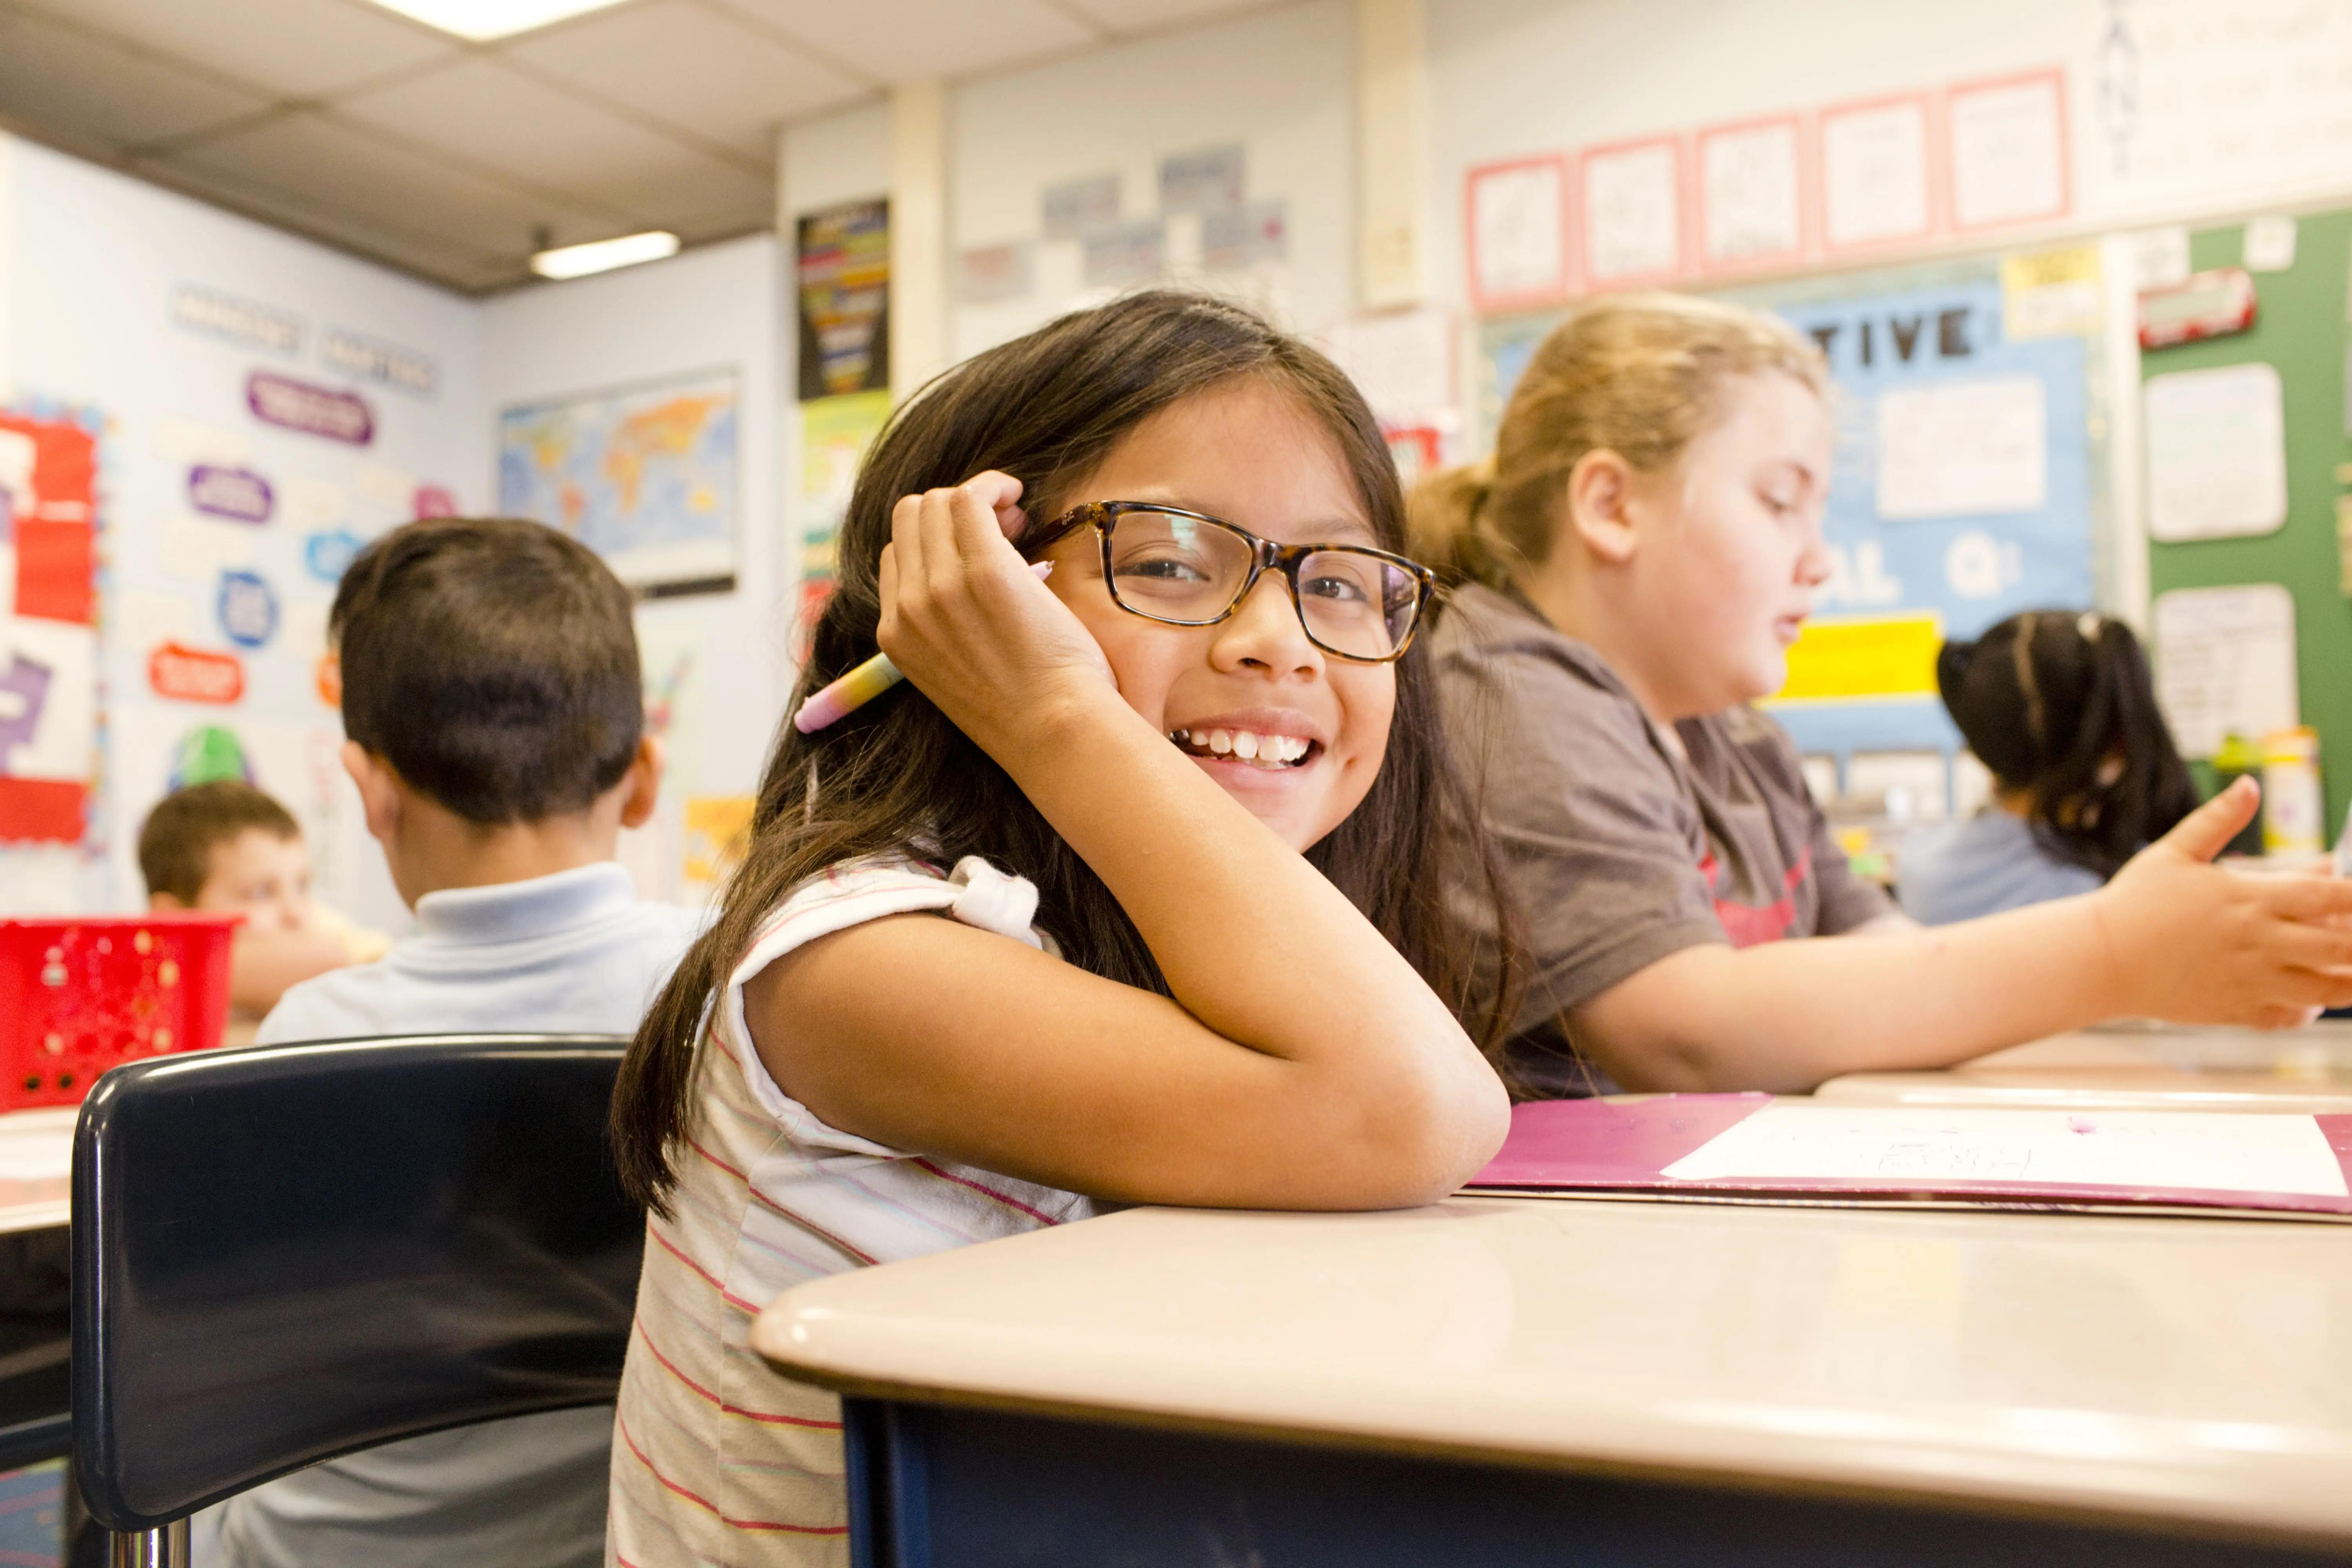 Children & Families,Youth Success,Goal 04: Quality Education